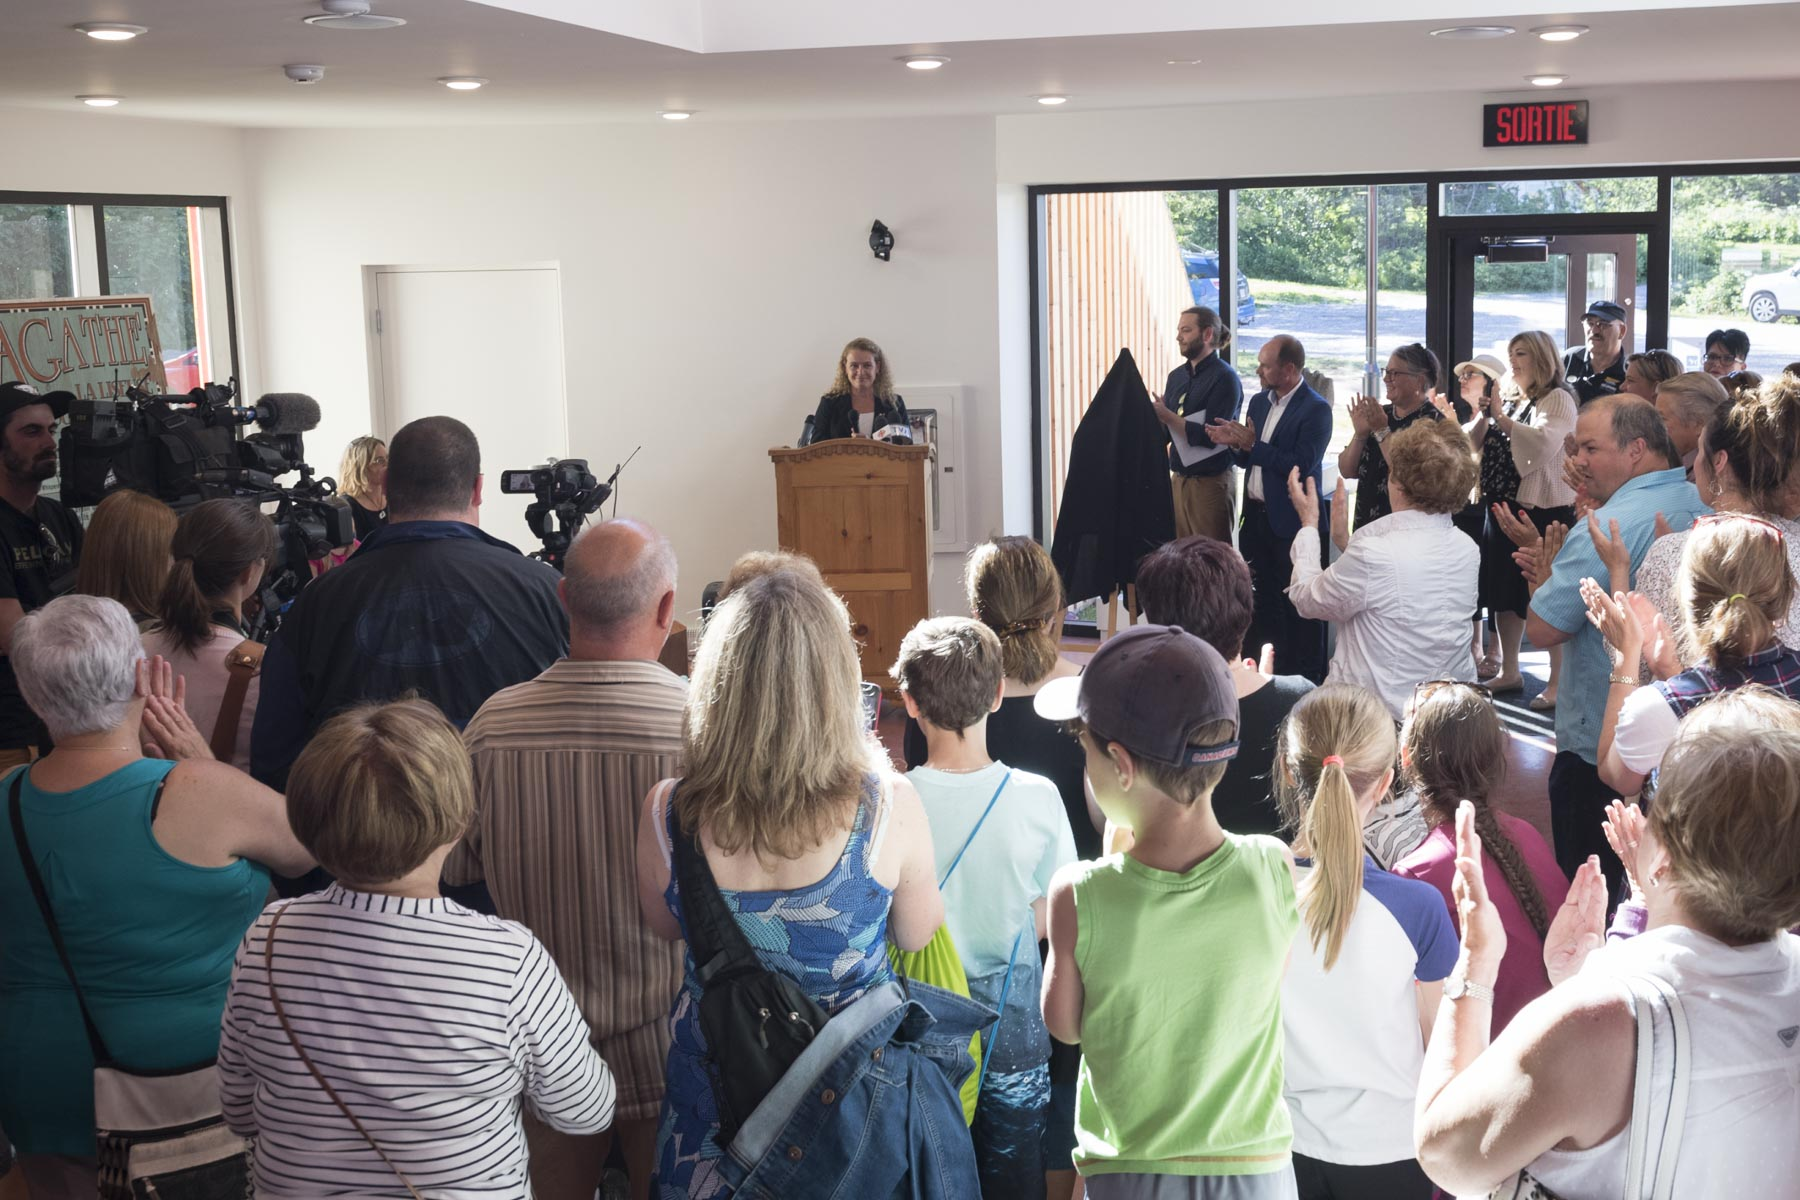 During the unveiling, the Governor General delivered brief remarks. She mentioned how much she always enjoys coming back to the Gaspé Peninsula.